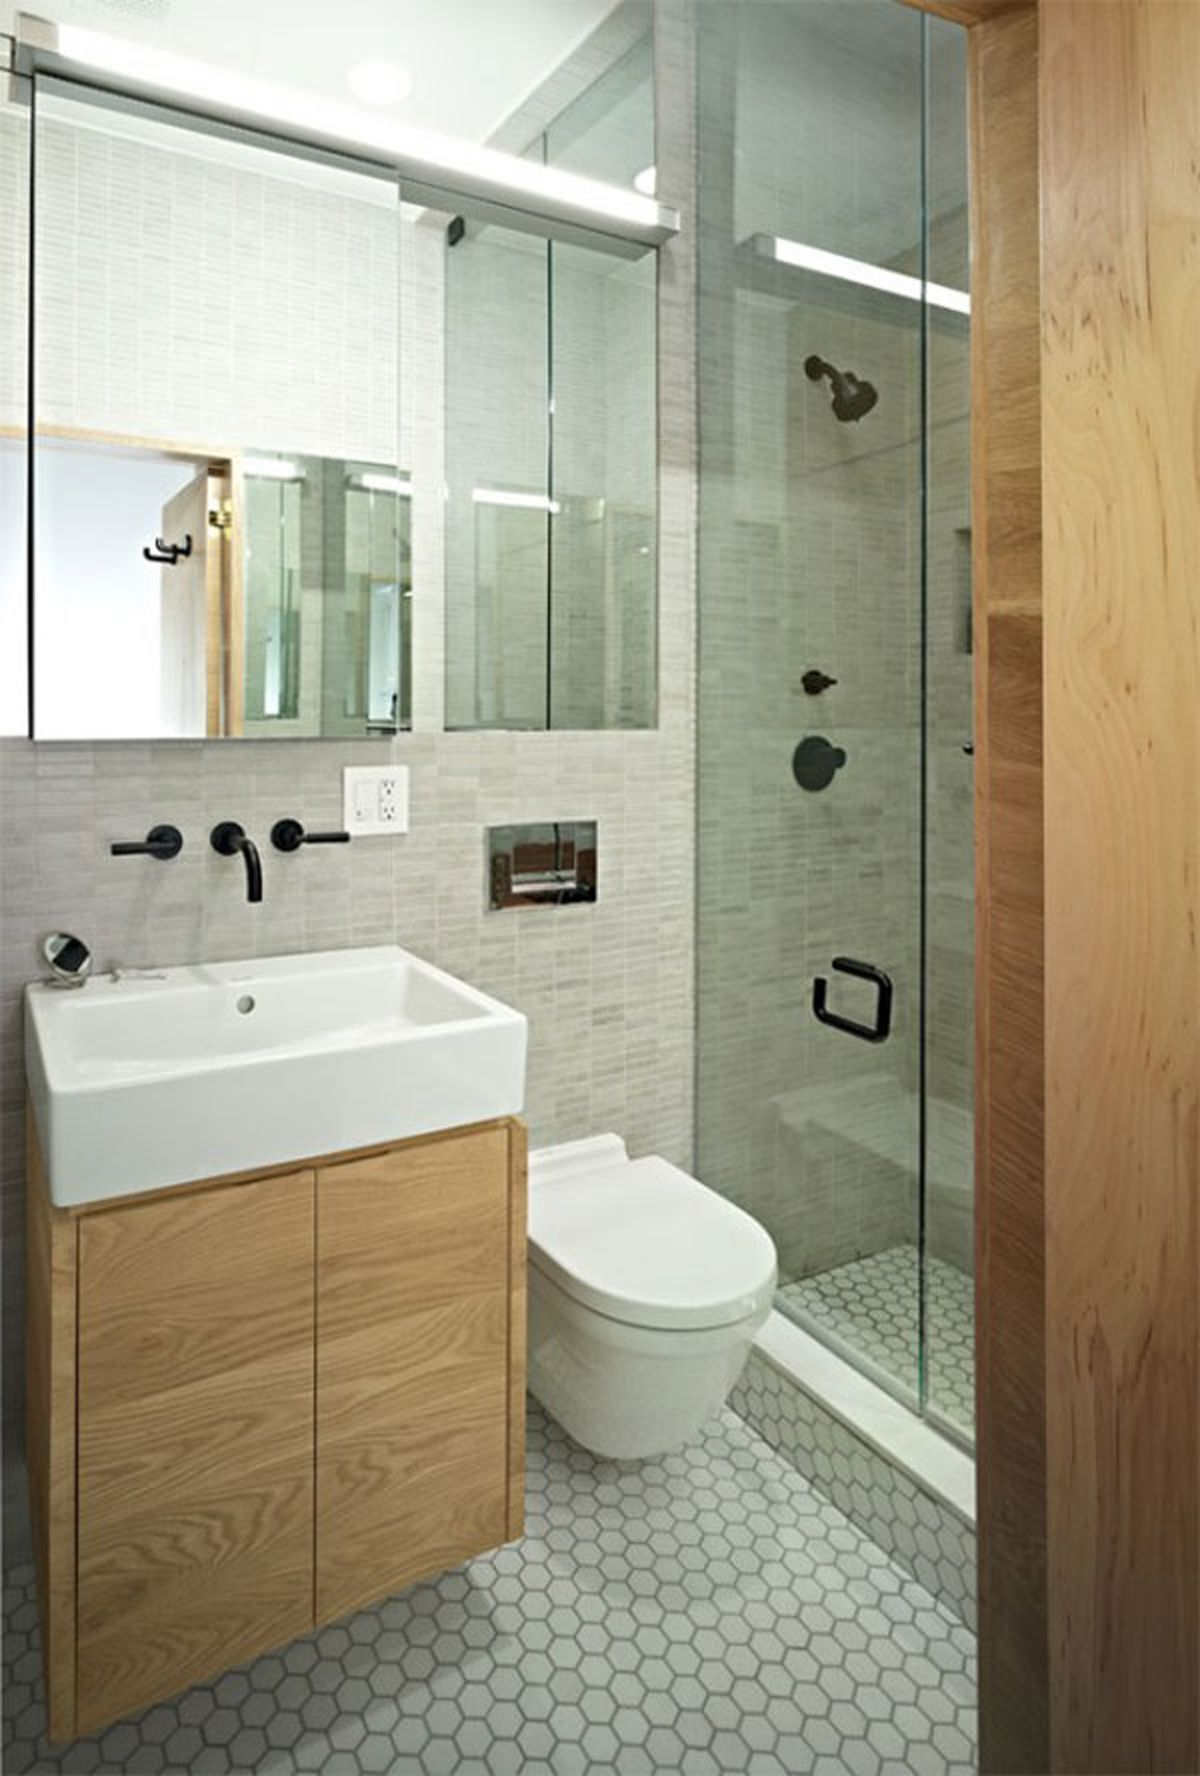 Pictures Of Small Bathroom Remodels With Modern Compact Toilet Design For Remodeling